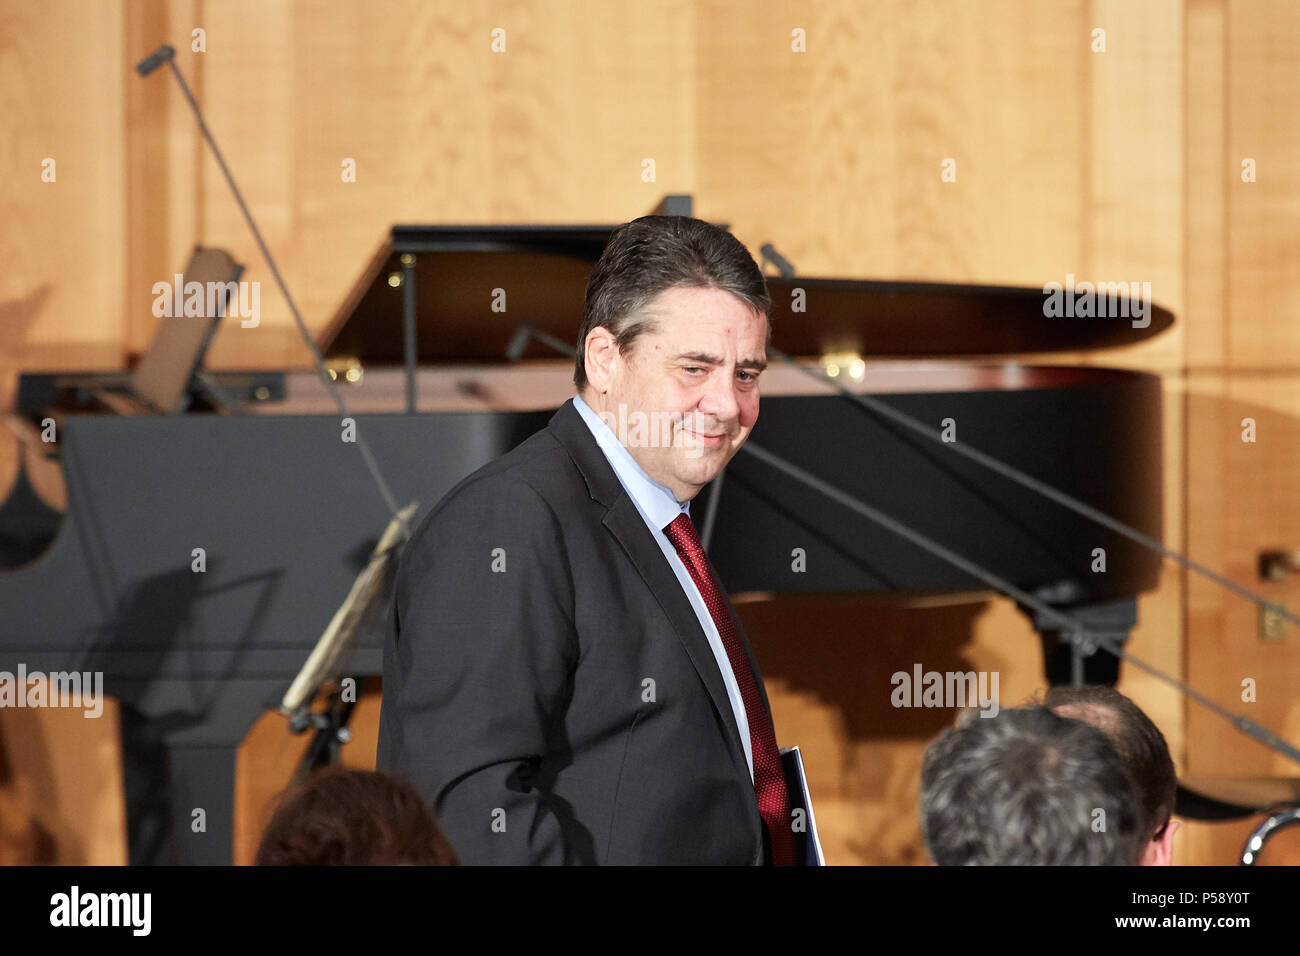 Berlin, Germany - Outgoing Foreign Minister Sigmar Gabriel at the ministerial change in the World Hall of the Foreign Ministry. - Stock Image